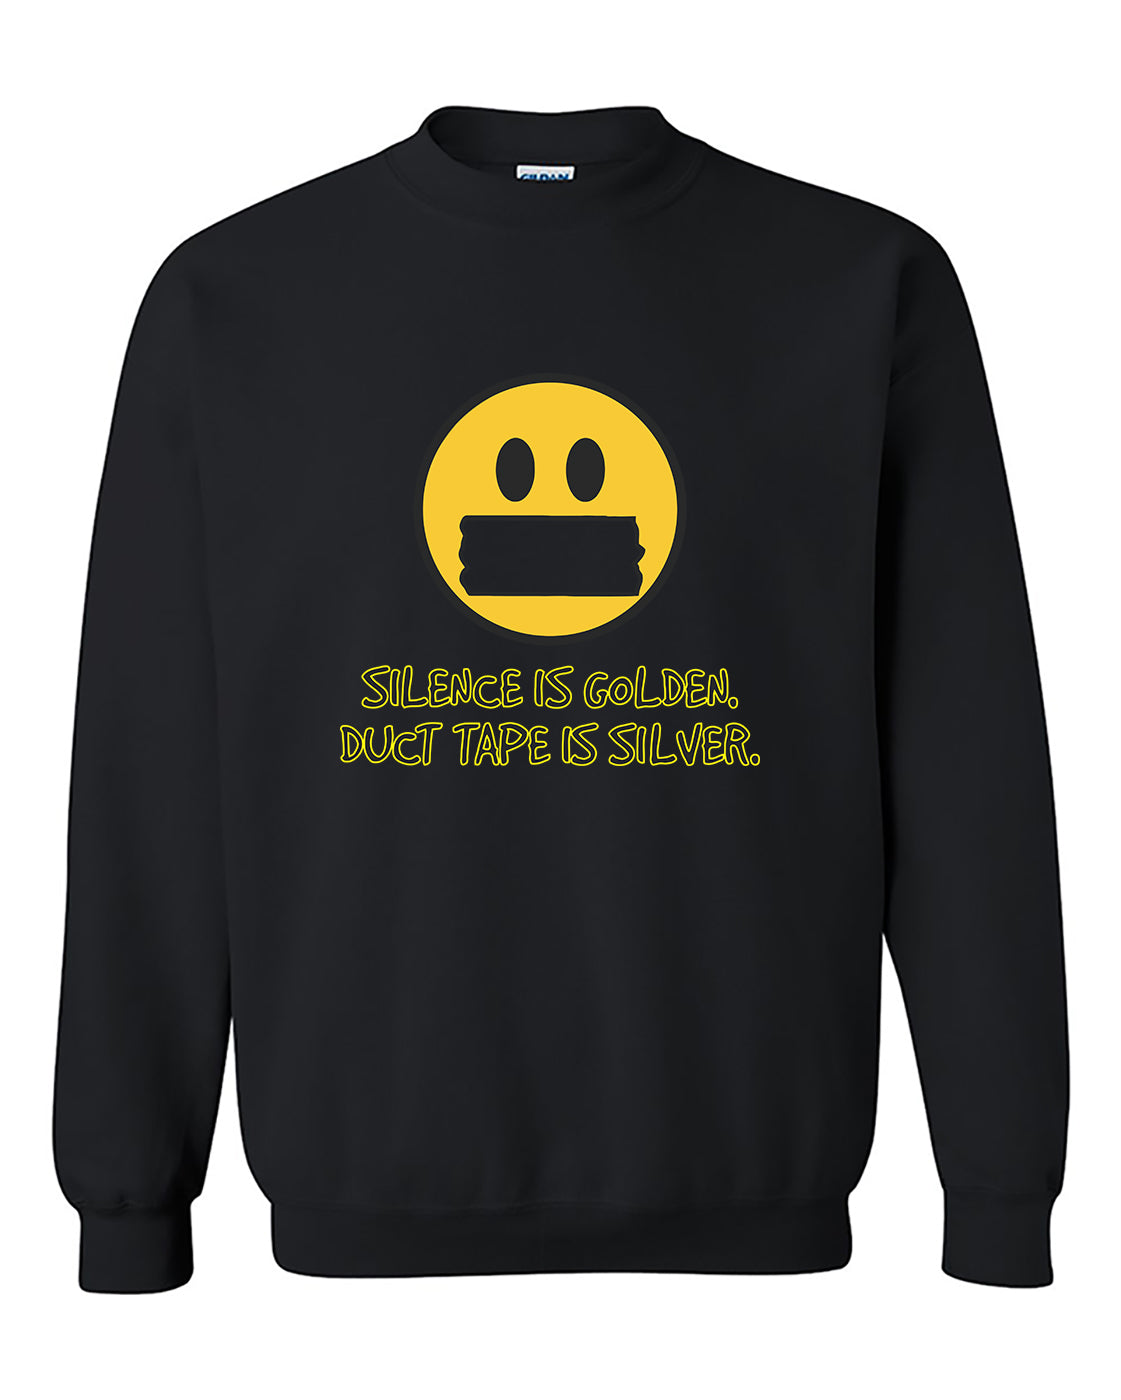 Silence is Golden, Duct Tape is Silver Funny Humour Crewneck Sweater